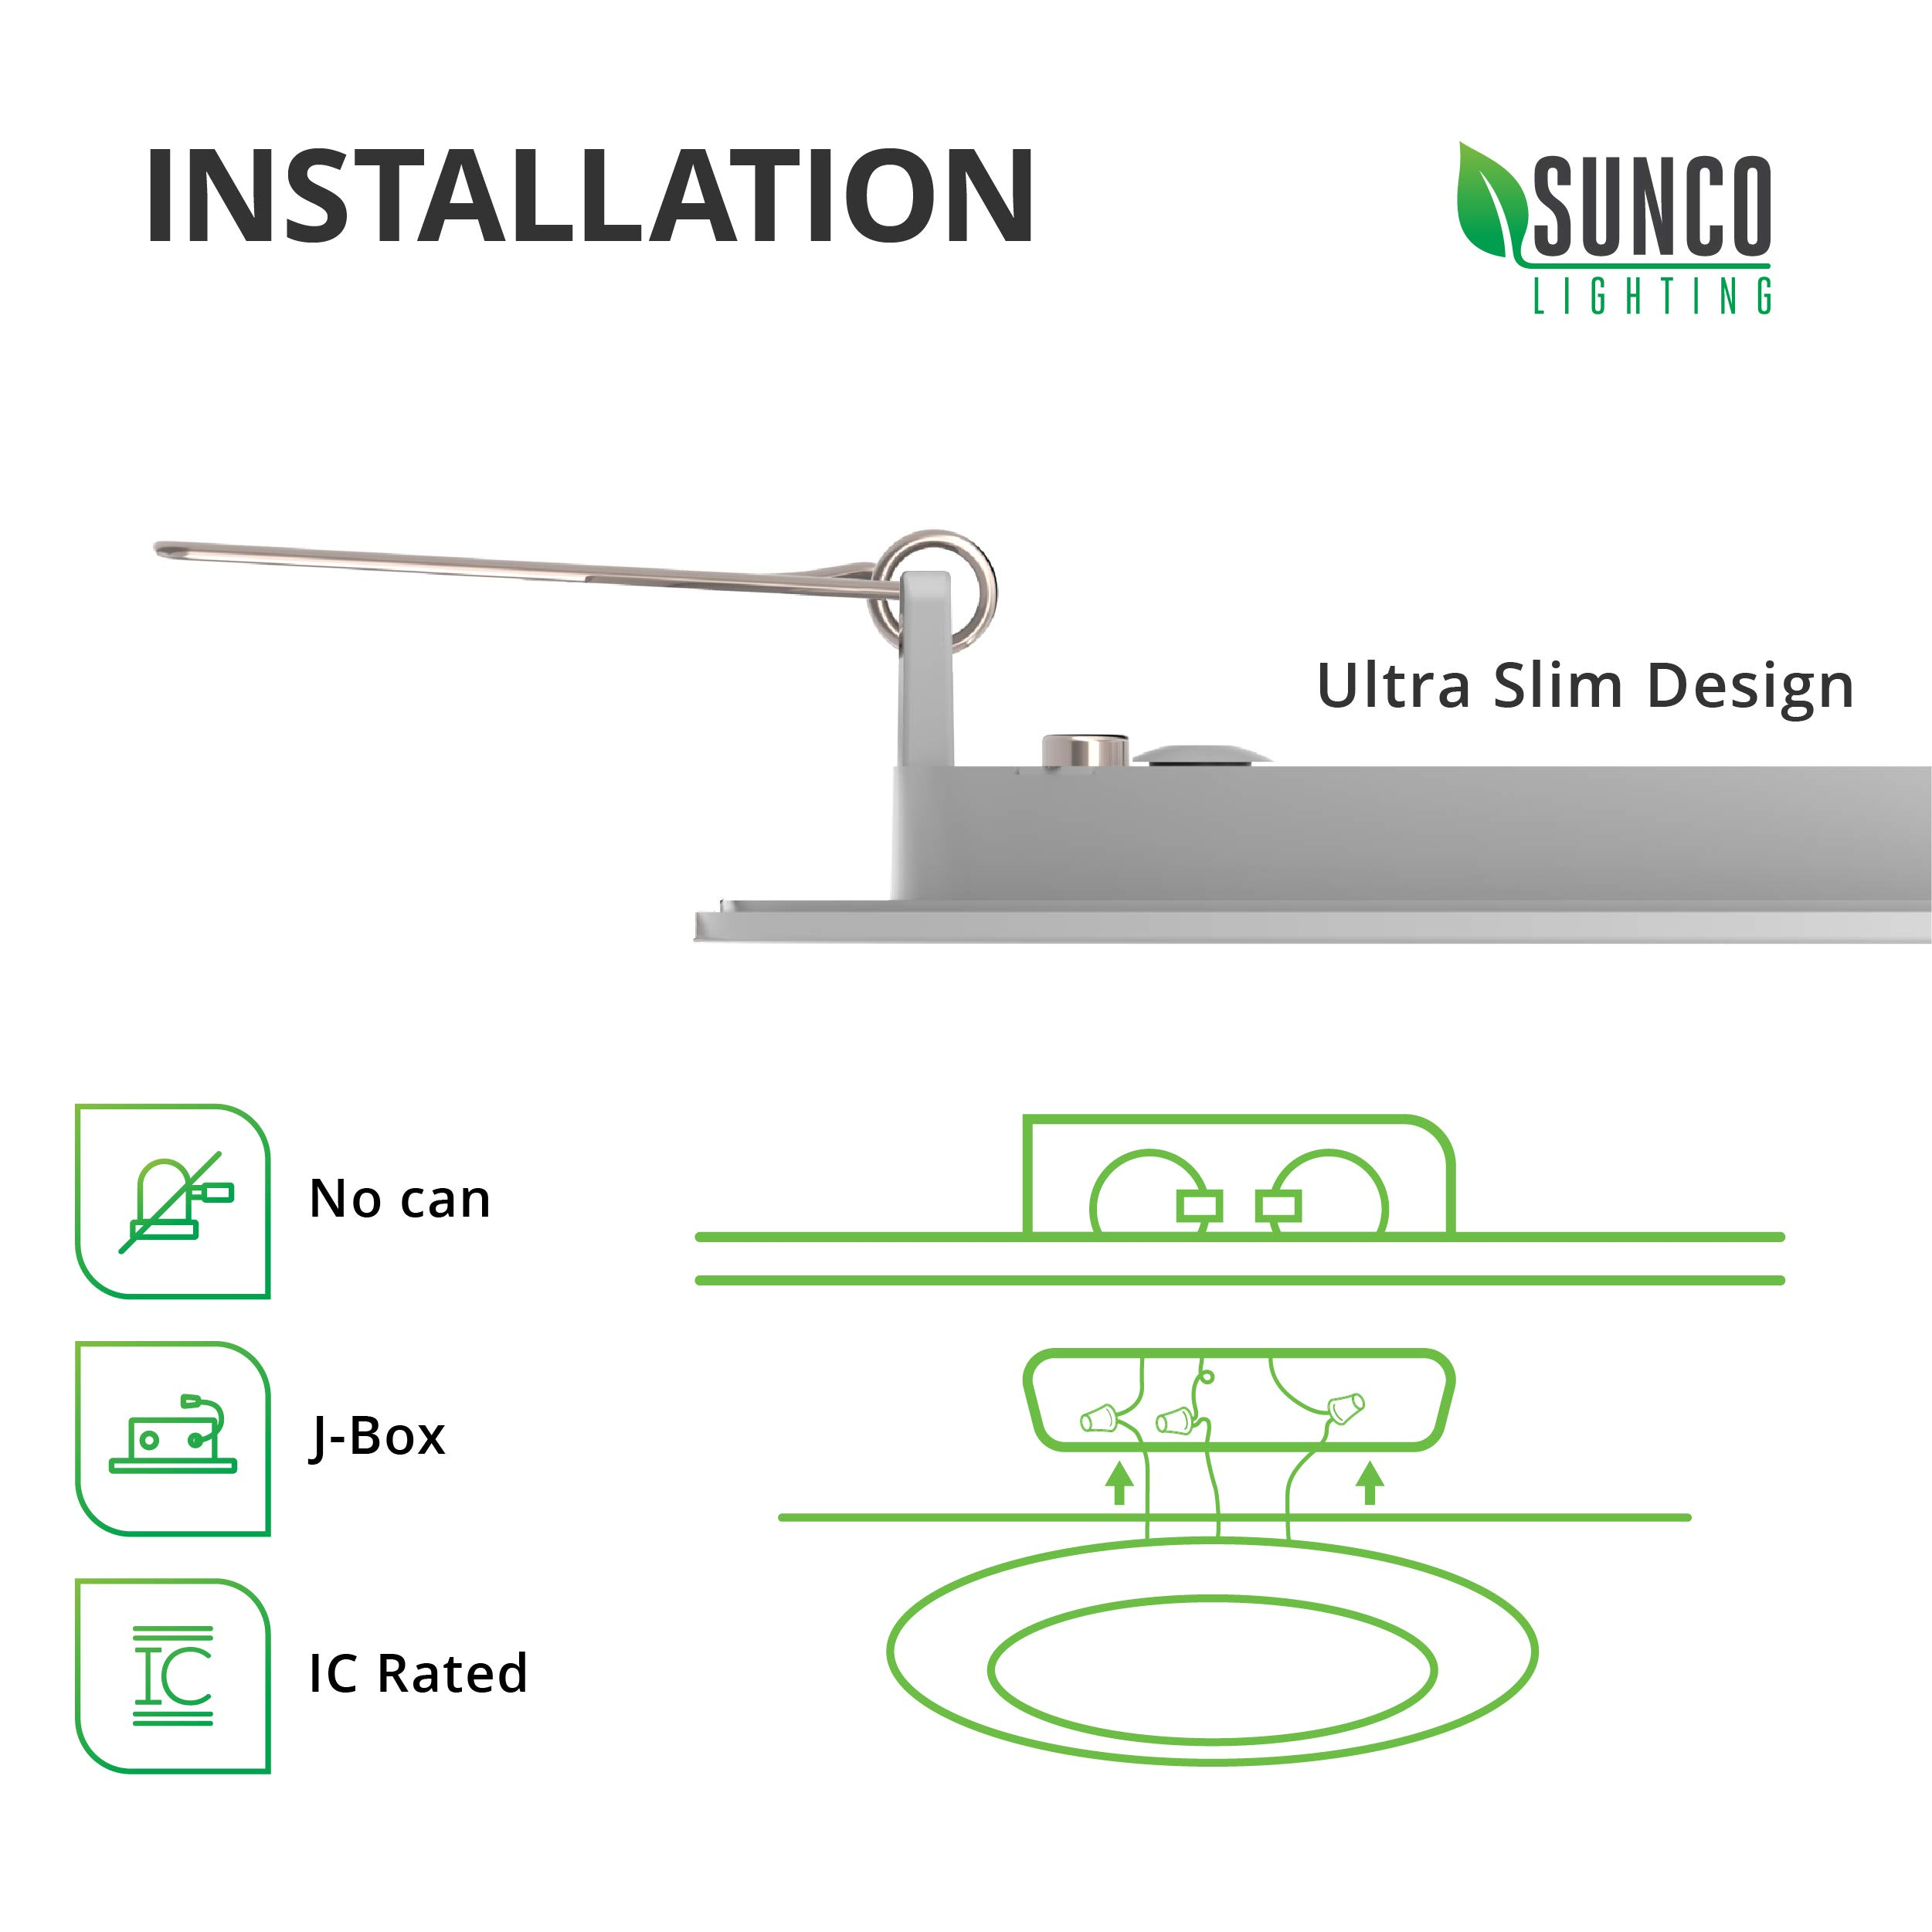 Sunco Lighting 16 Pack 4 Inch Slim LED Downlight with Junction Box,10W=60W, 650 LM, Dimmable, 5000K Daylight, Recessed Jbox Fixture, IC Rated, Simple Retrofit Installation - ETL & Energy Star by Sunco Lighting (Image #4)